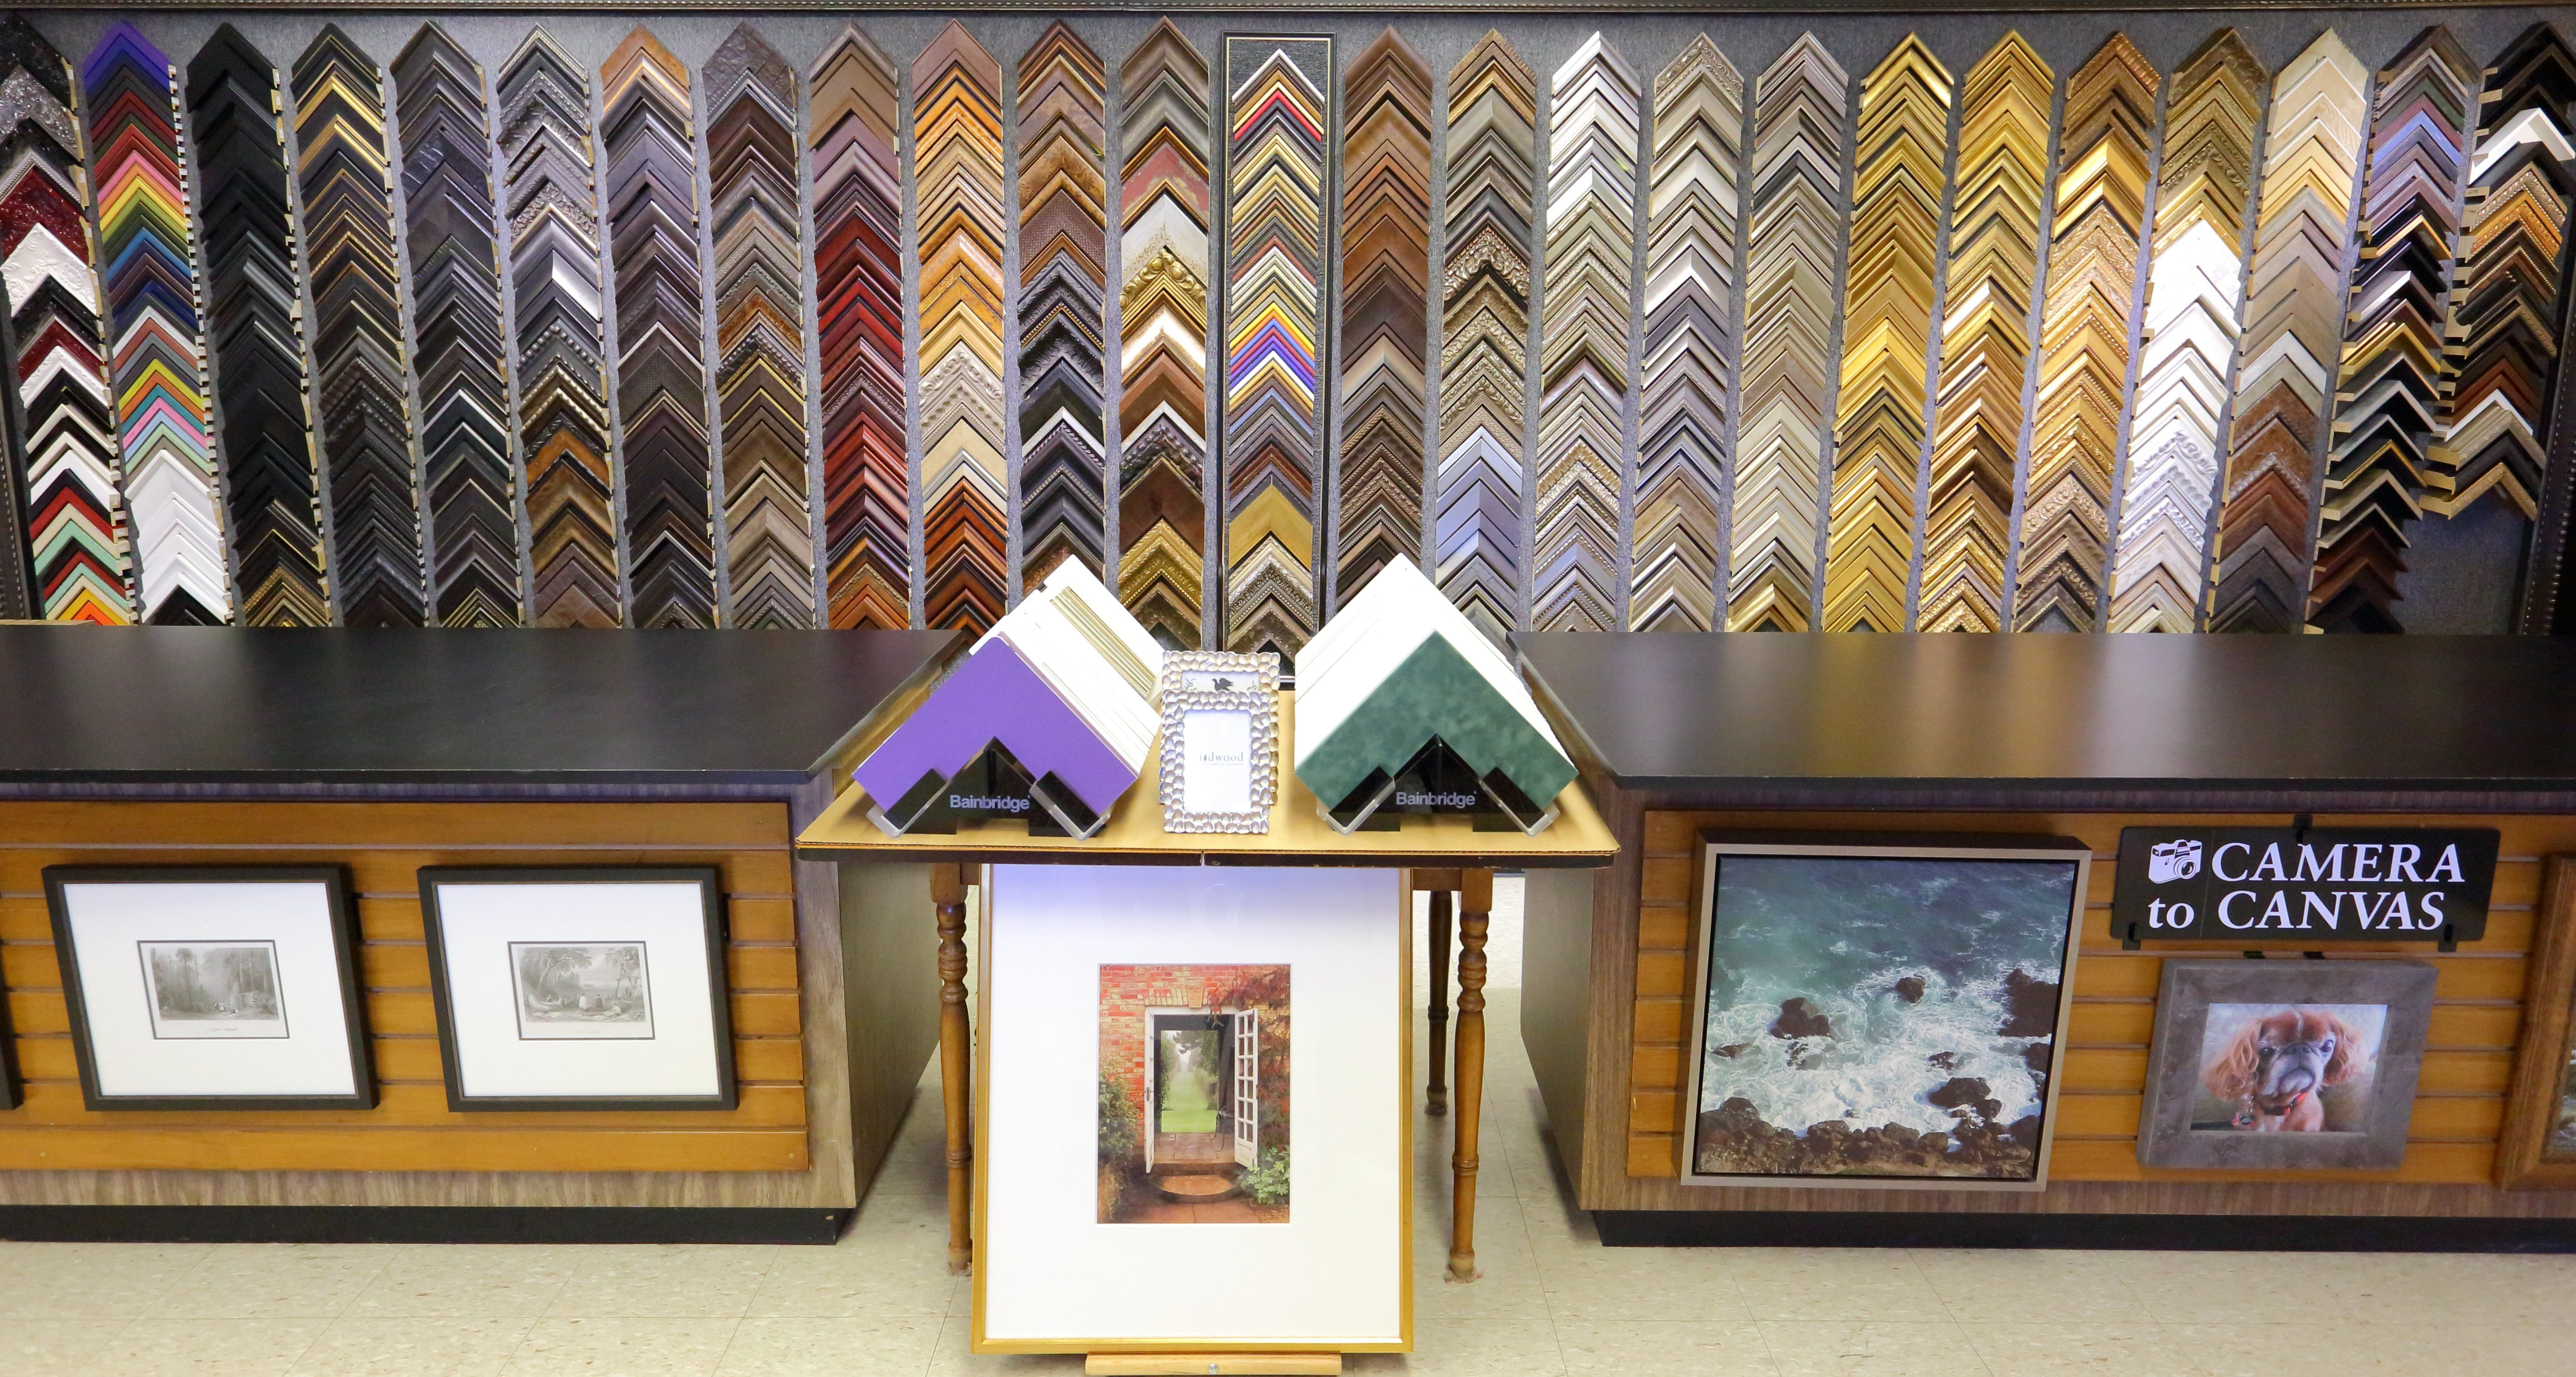 custom picture framing services - Houston TX